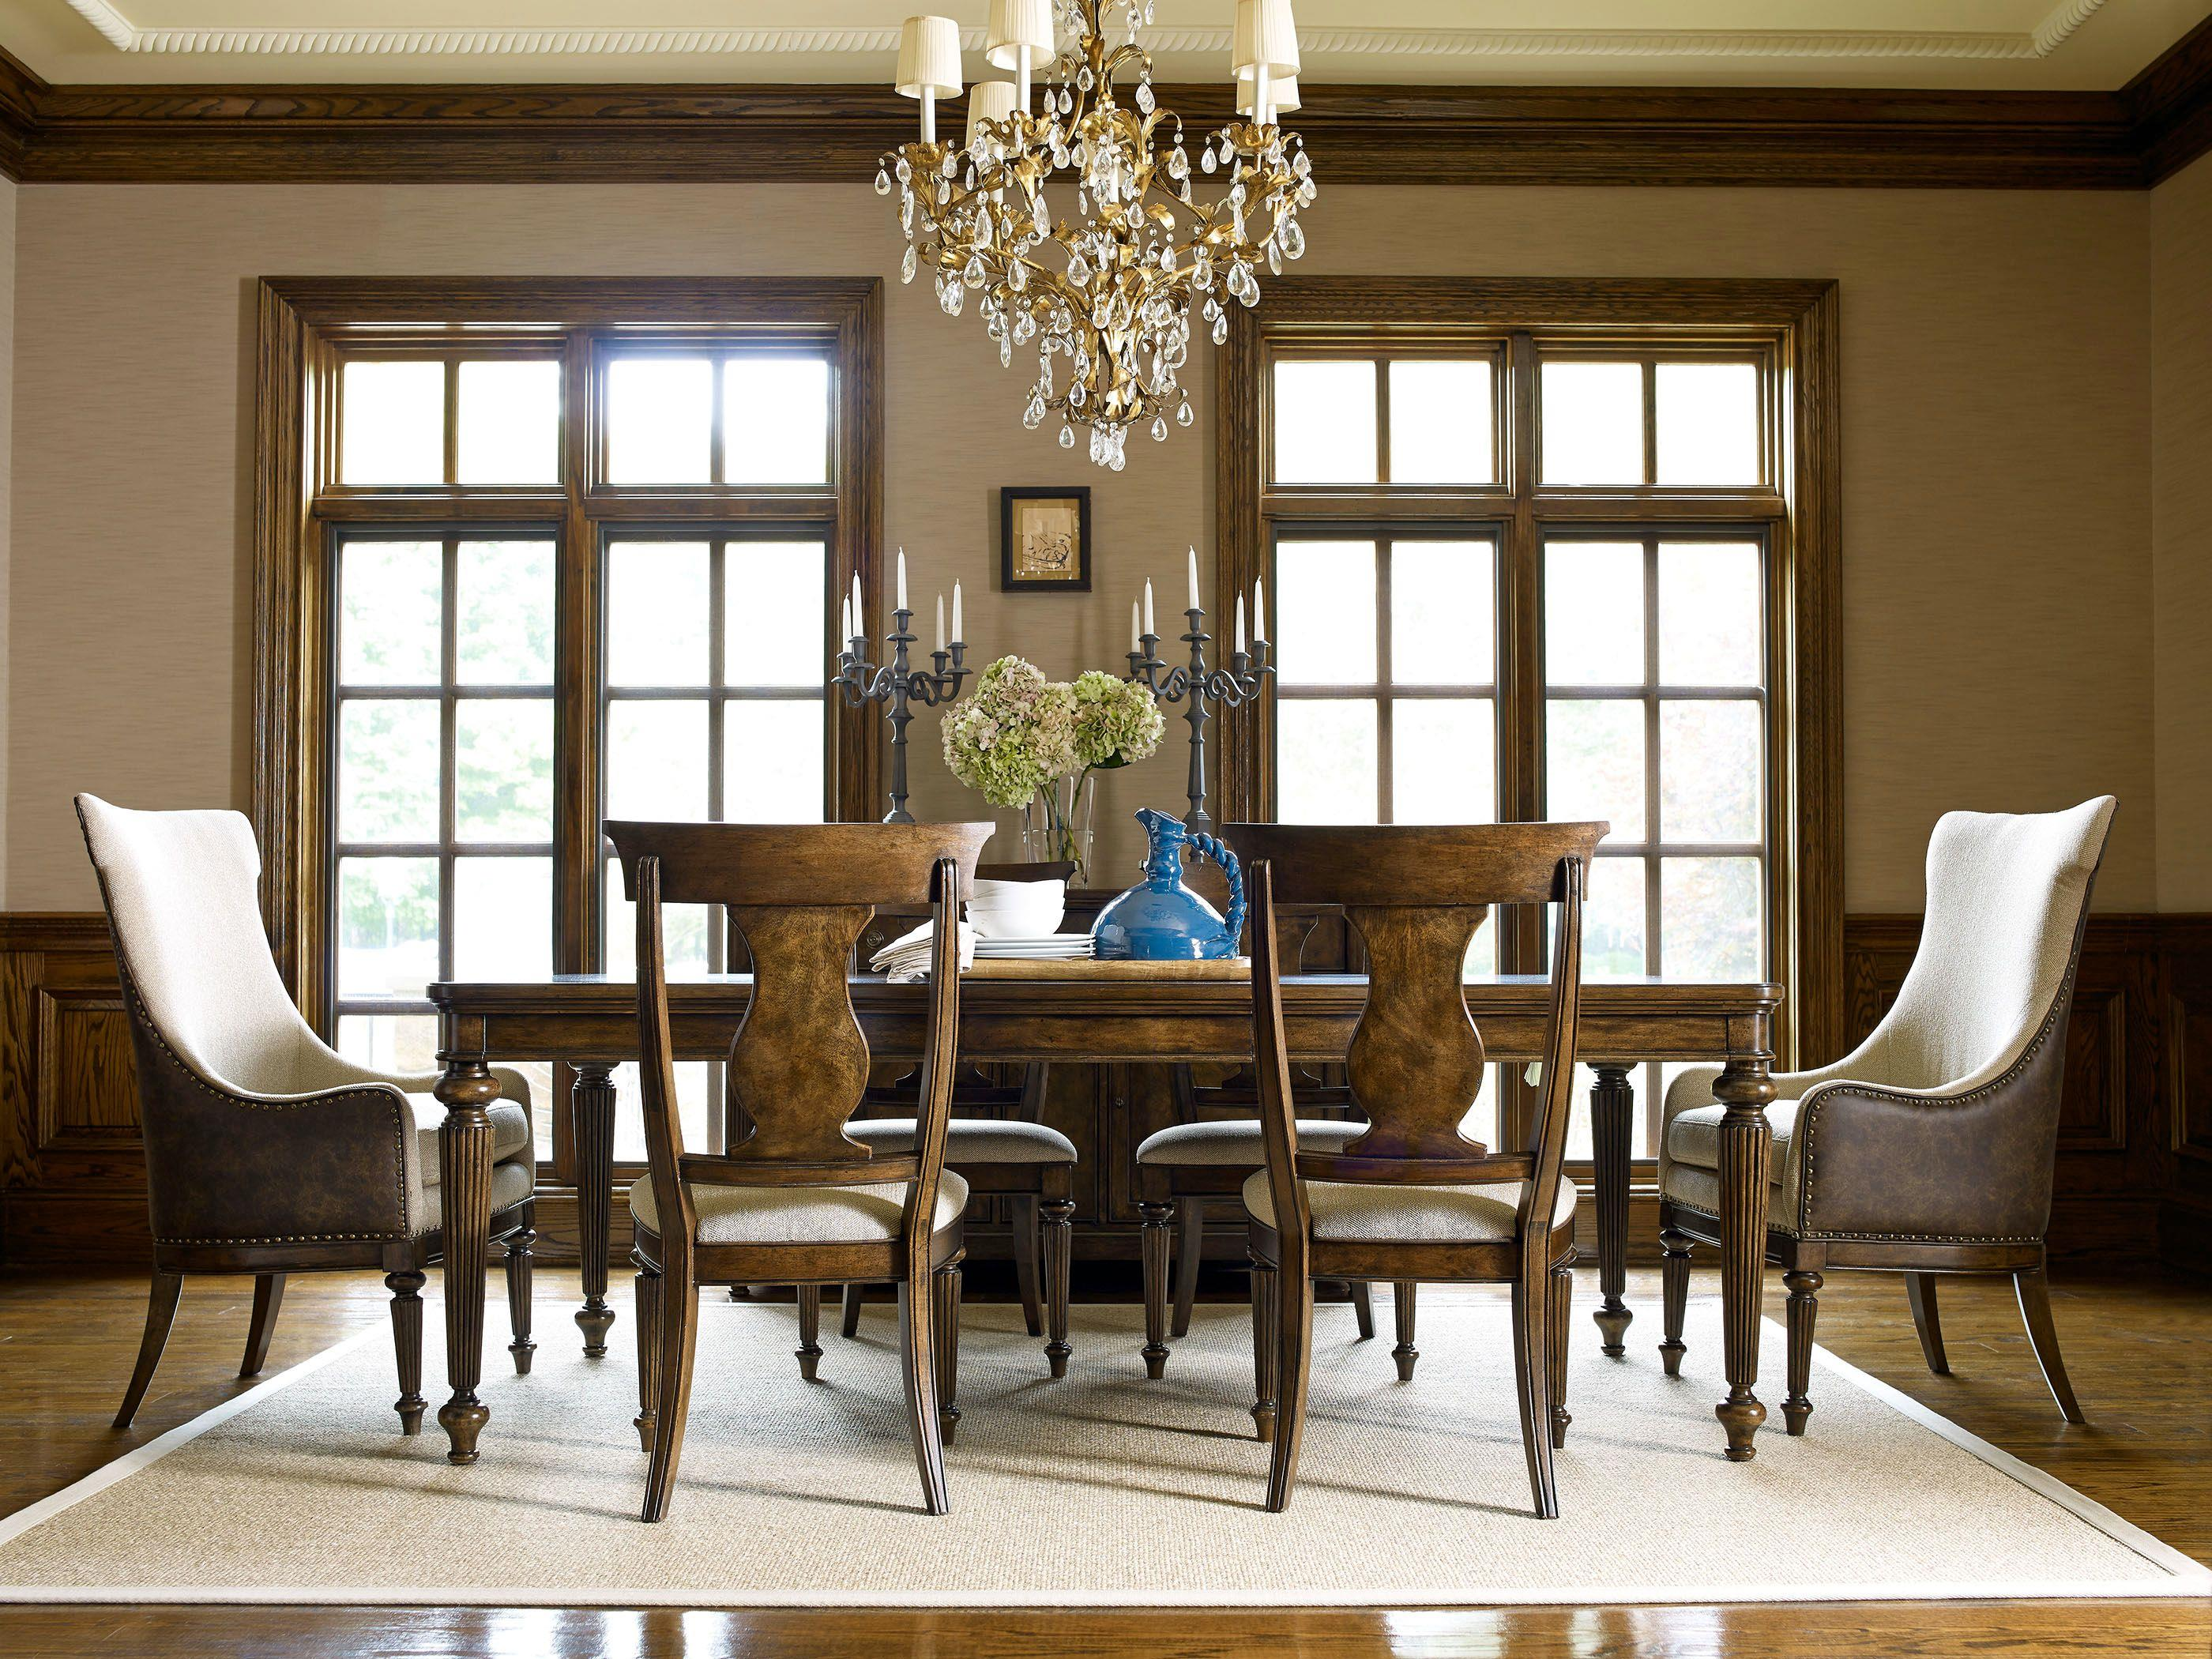 Legacy Classic Barrington Farm Formal Dining Room Group - Item Number: 5200 Dining Room Group 2